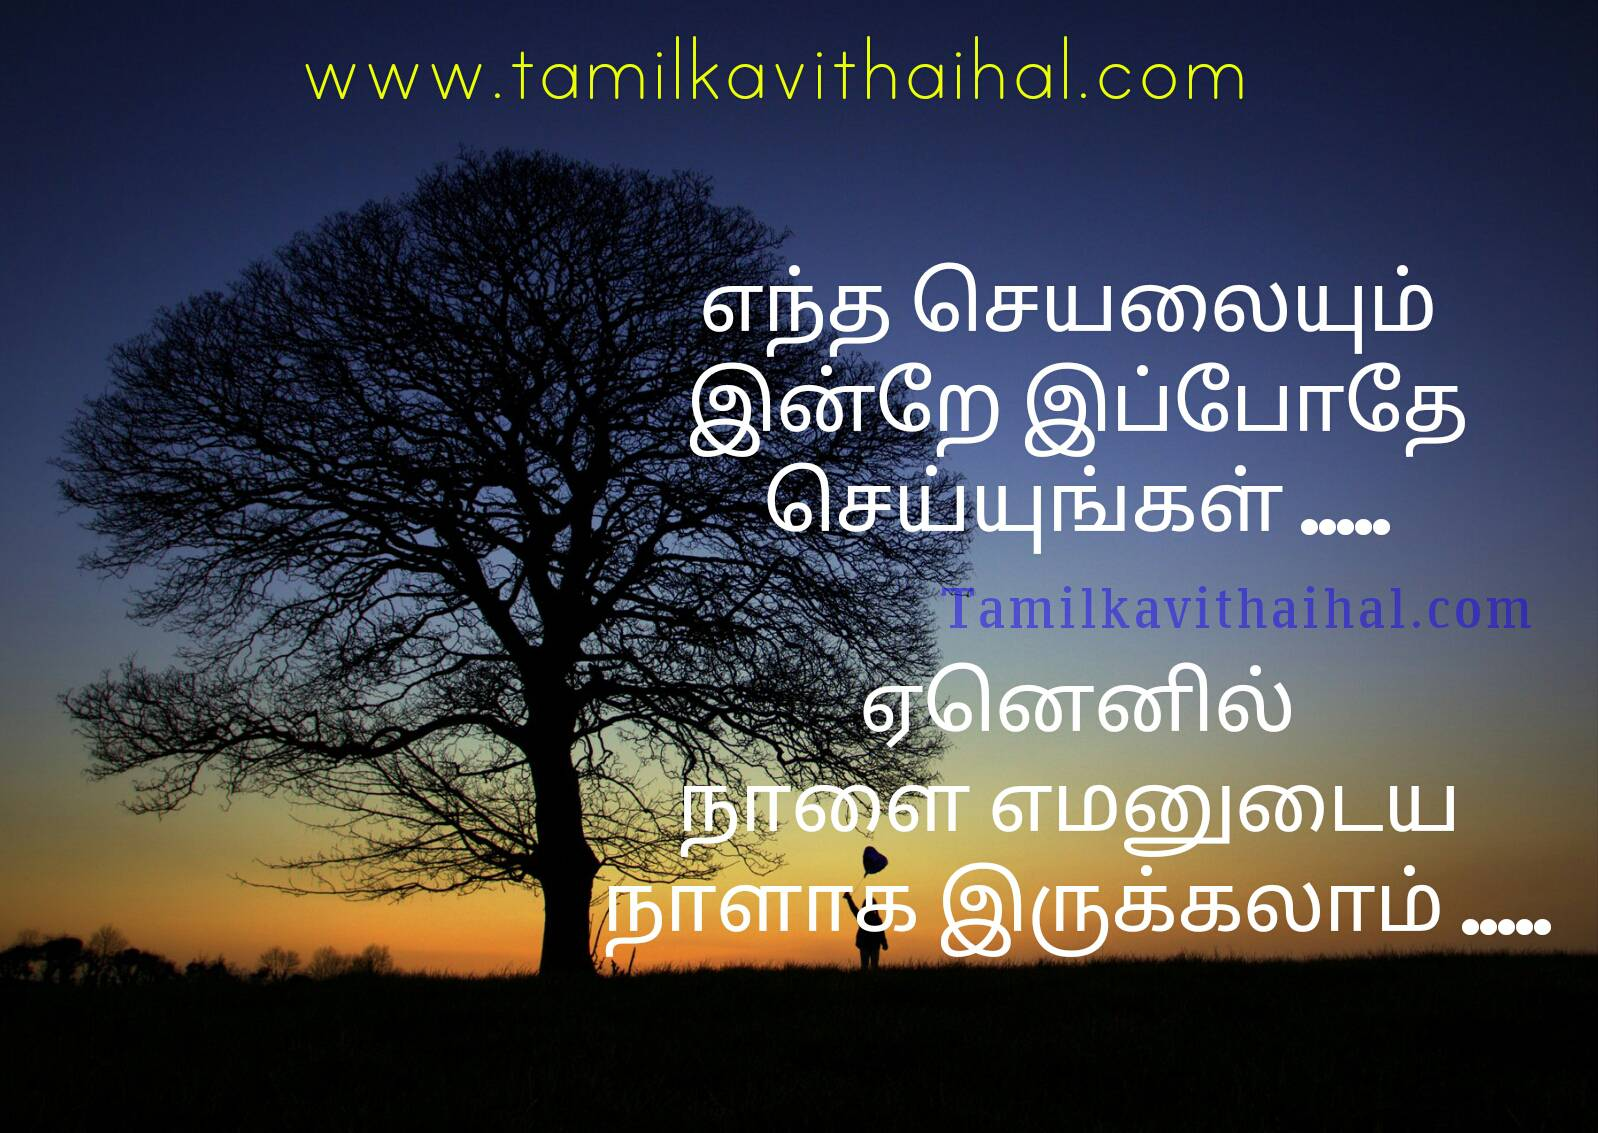 Best Tamil Quotes For Motivation Death Family Future Happy Facebook